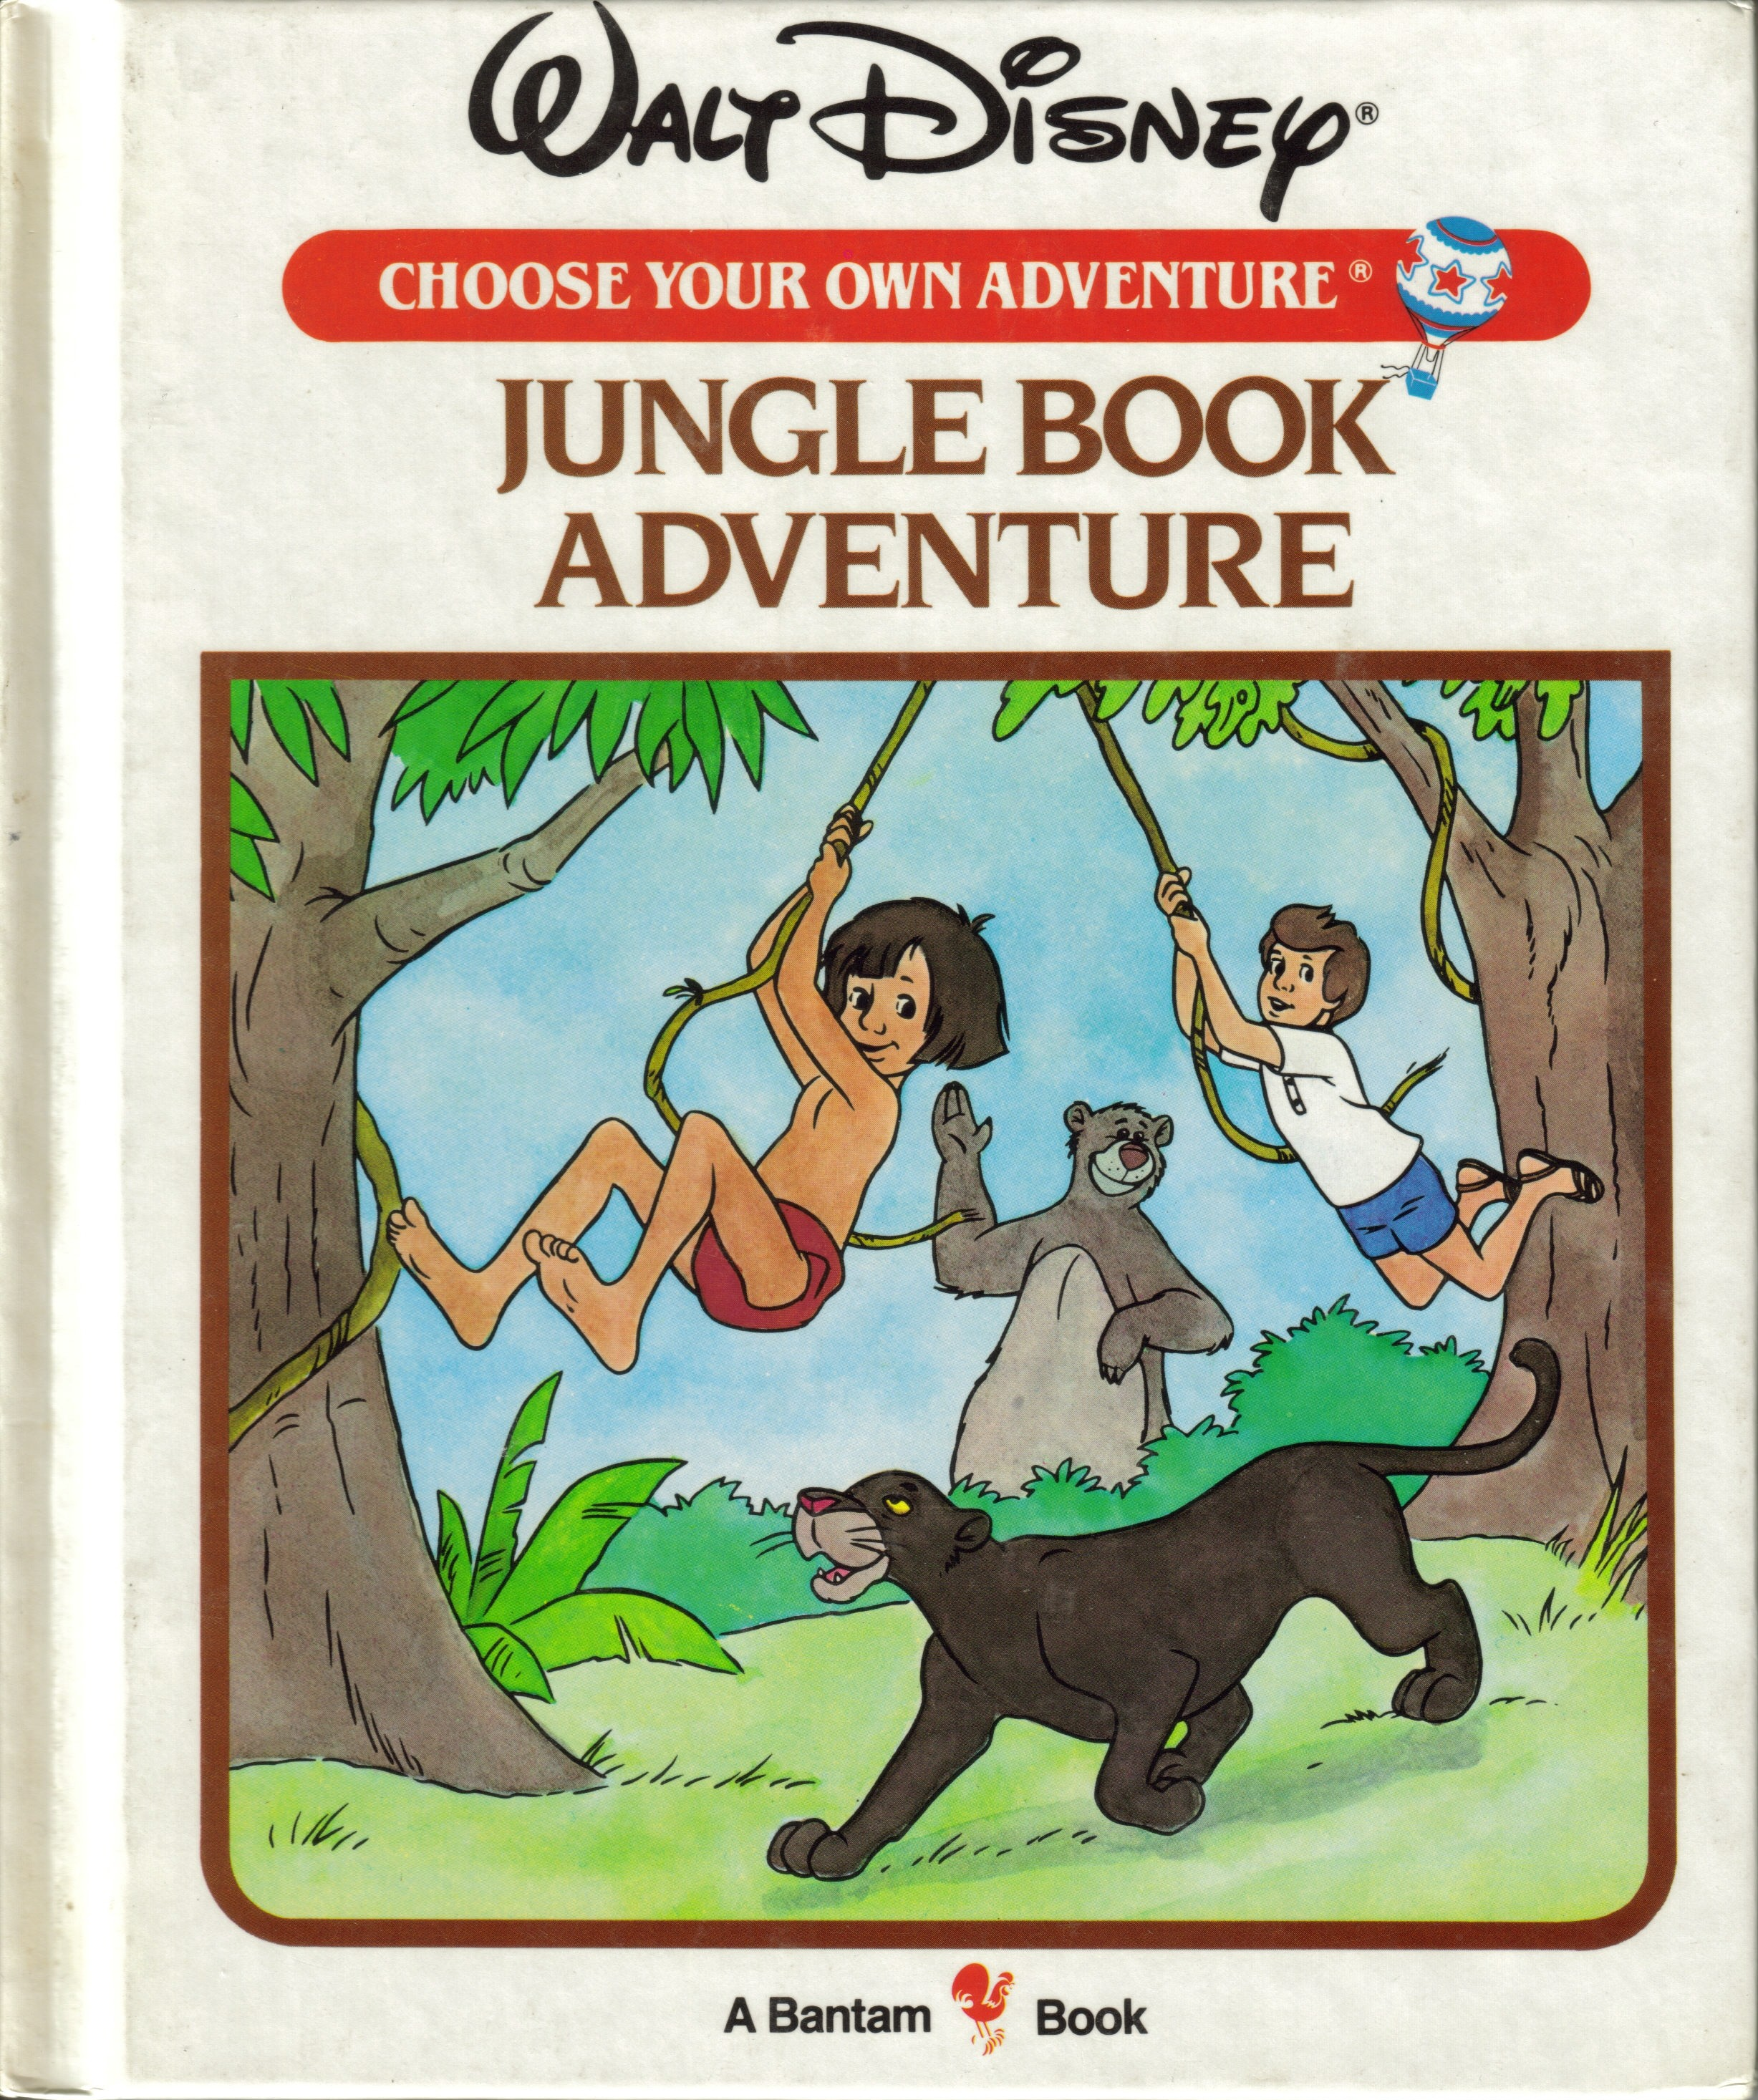 Item - Jungle Book Adventure - Demian's Gamebook Web Page